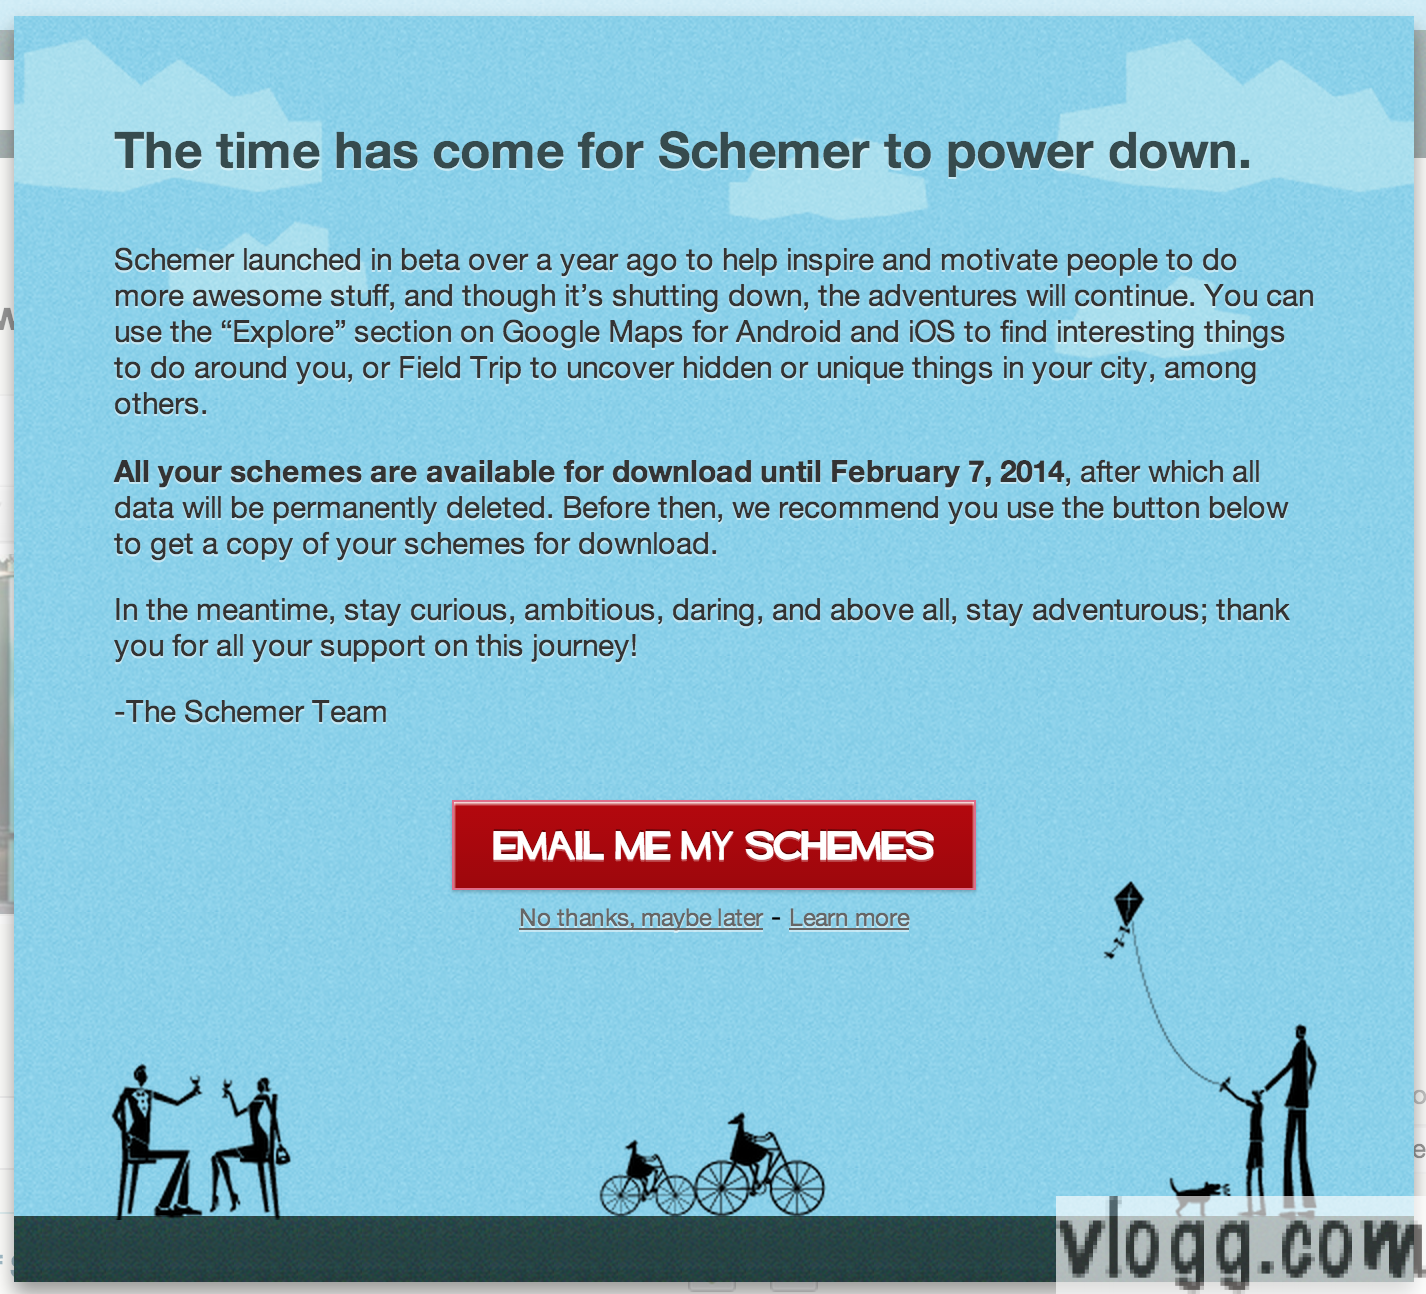 Google Schemer Beta to Shutdown in February 2014!